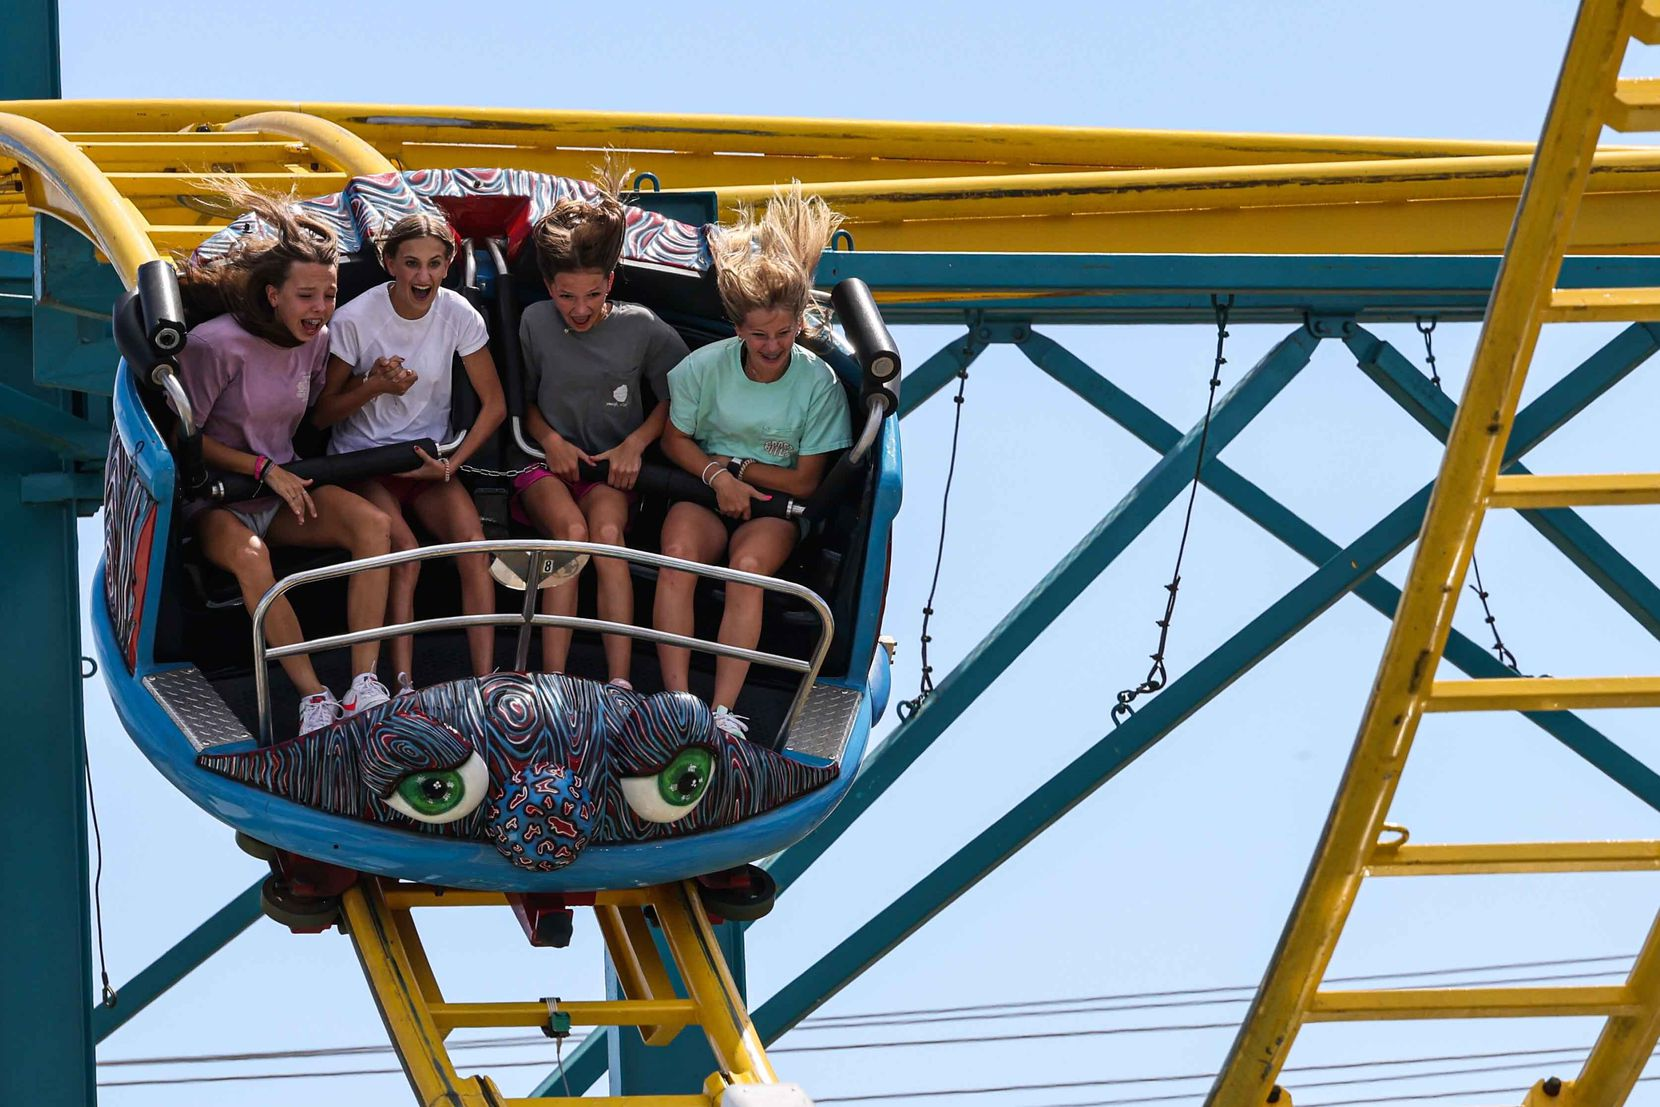 People aboard a carnival ride at the State Fair of Texas during its opening day in Dallas on Friday, September 24, 2021. The fair was canceled in 2020 due to the pandemic, making this year's event all that much more anticipated.